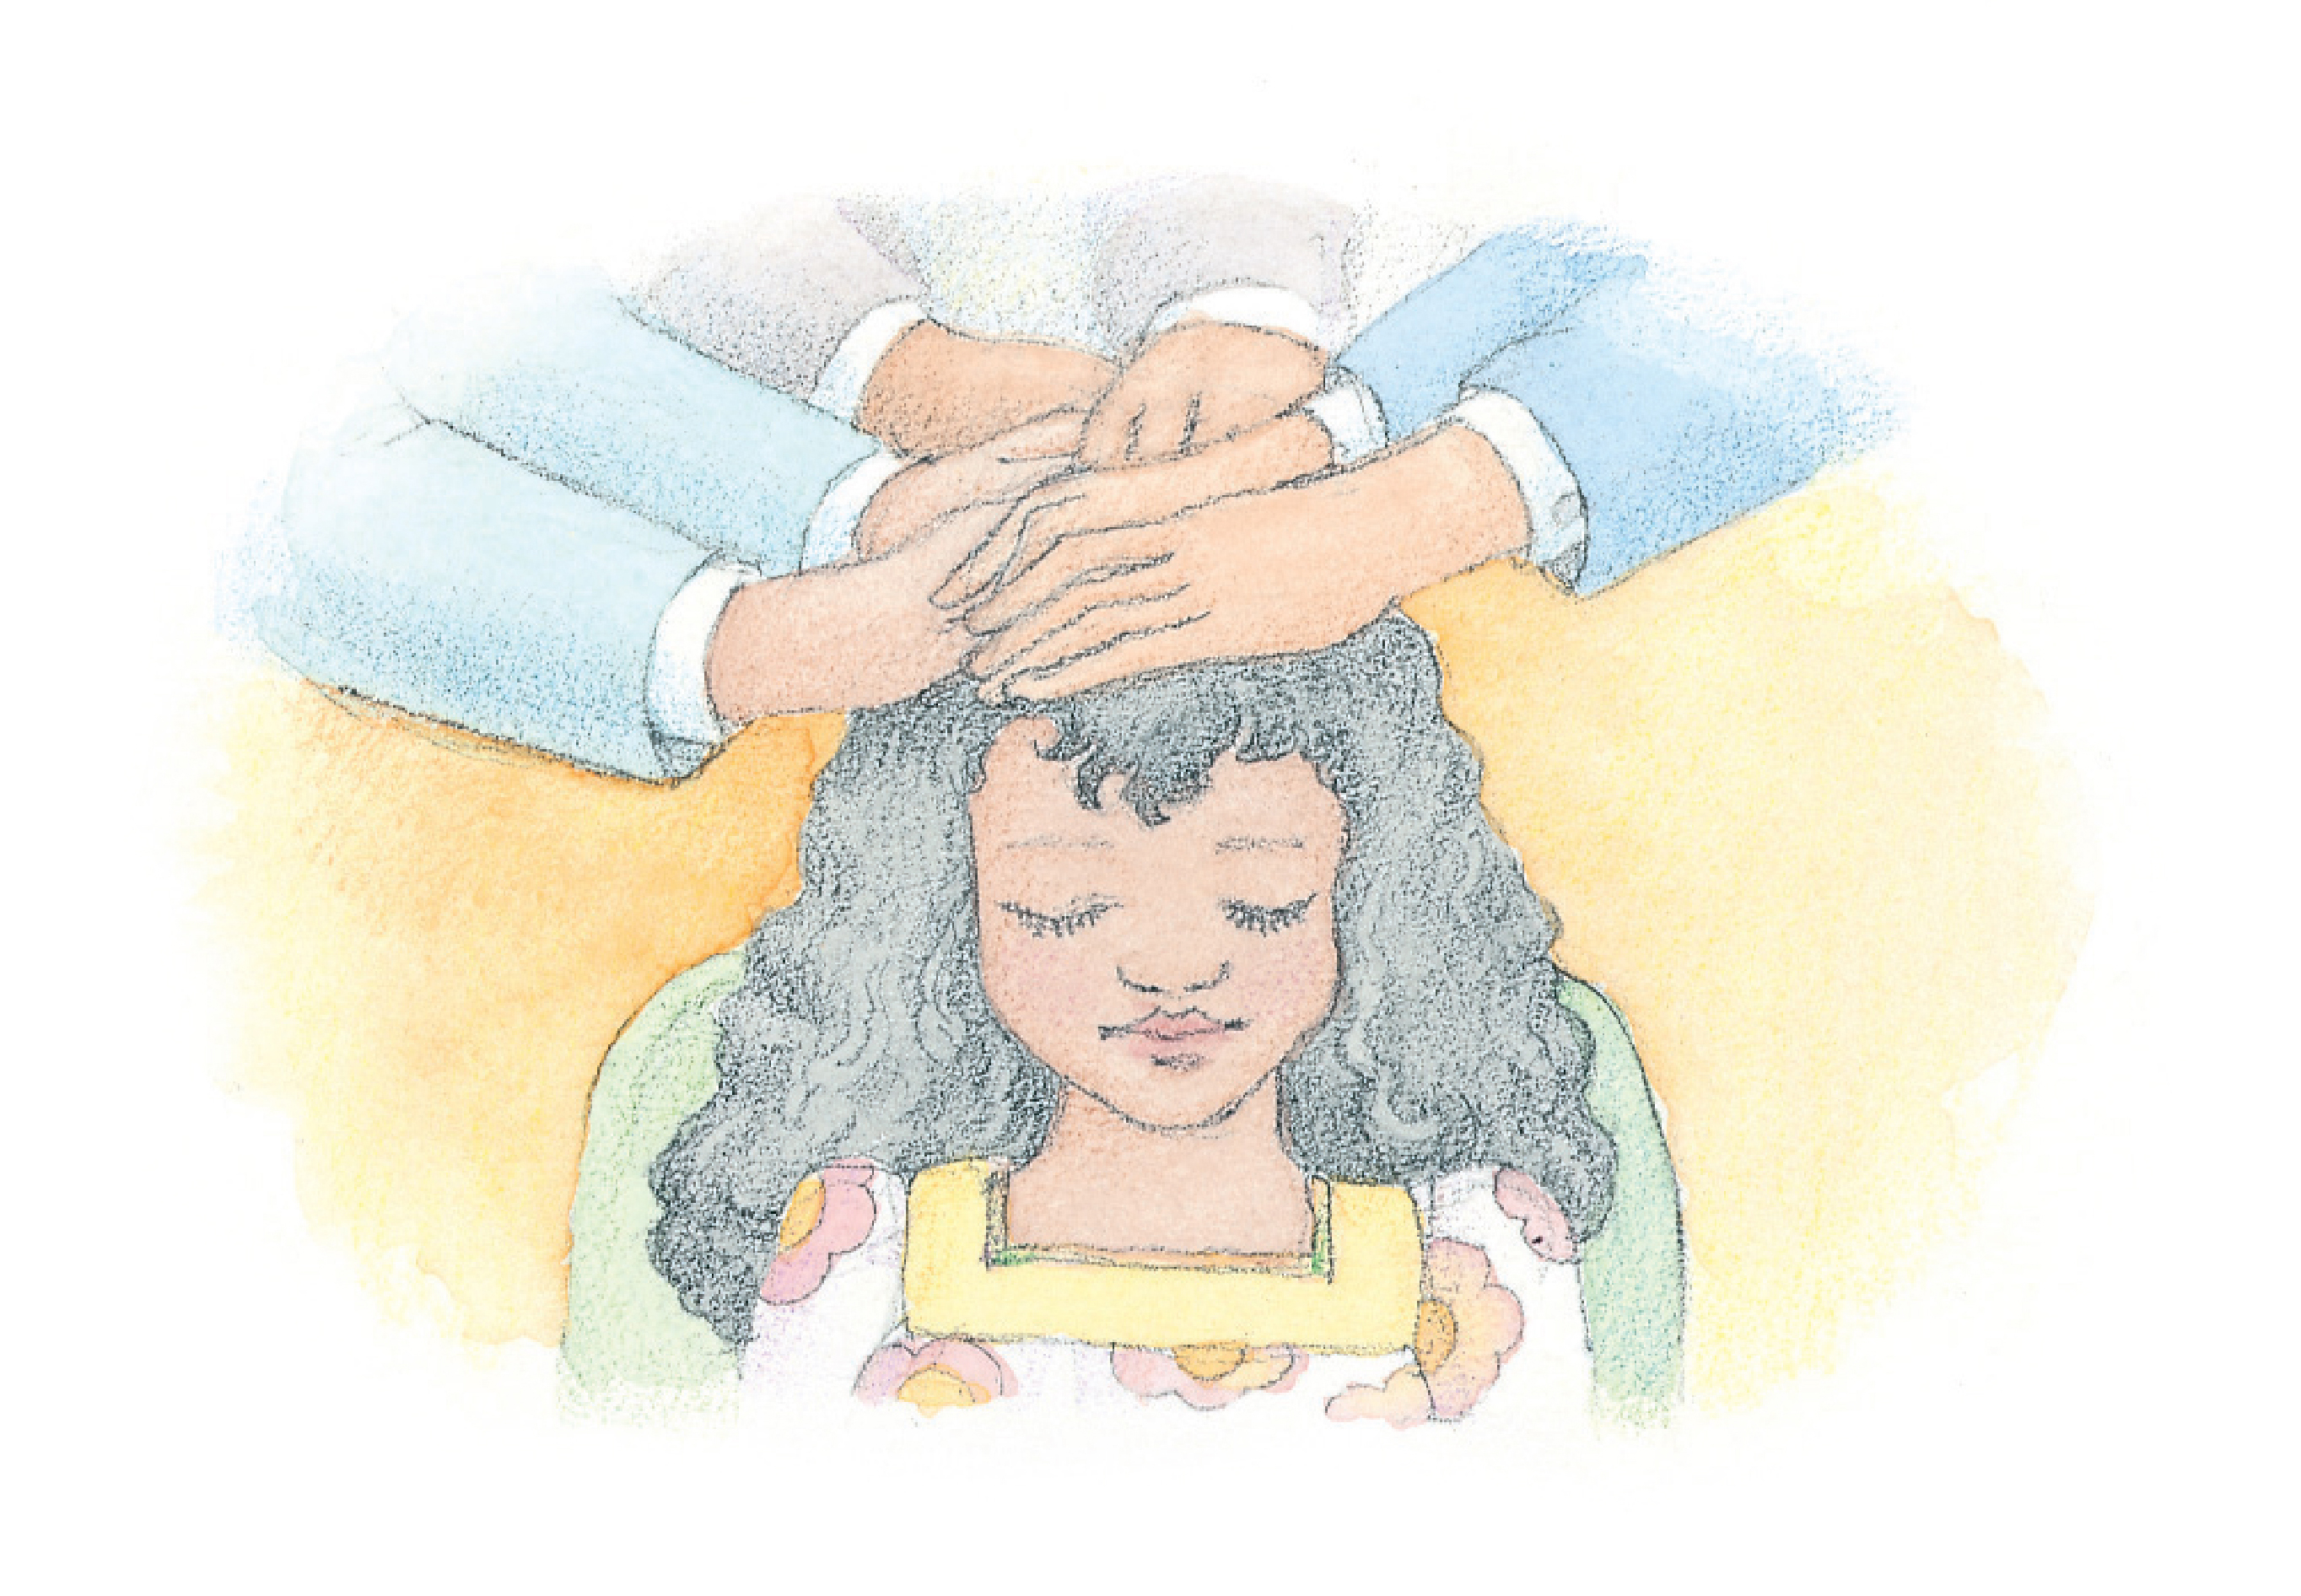 """A young girl being confirmed a member of the Church. From the Children's Songbook, page 77, """"The Church of Jesus Christ""""; watercolor illustration by Phyllis Luch."""